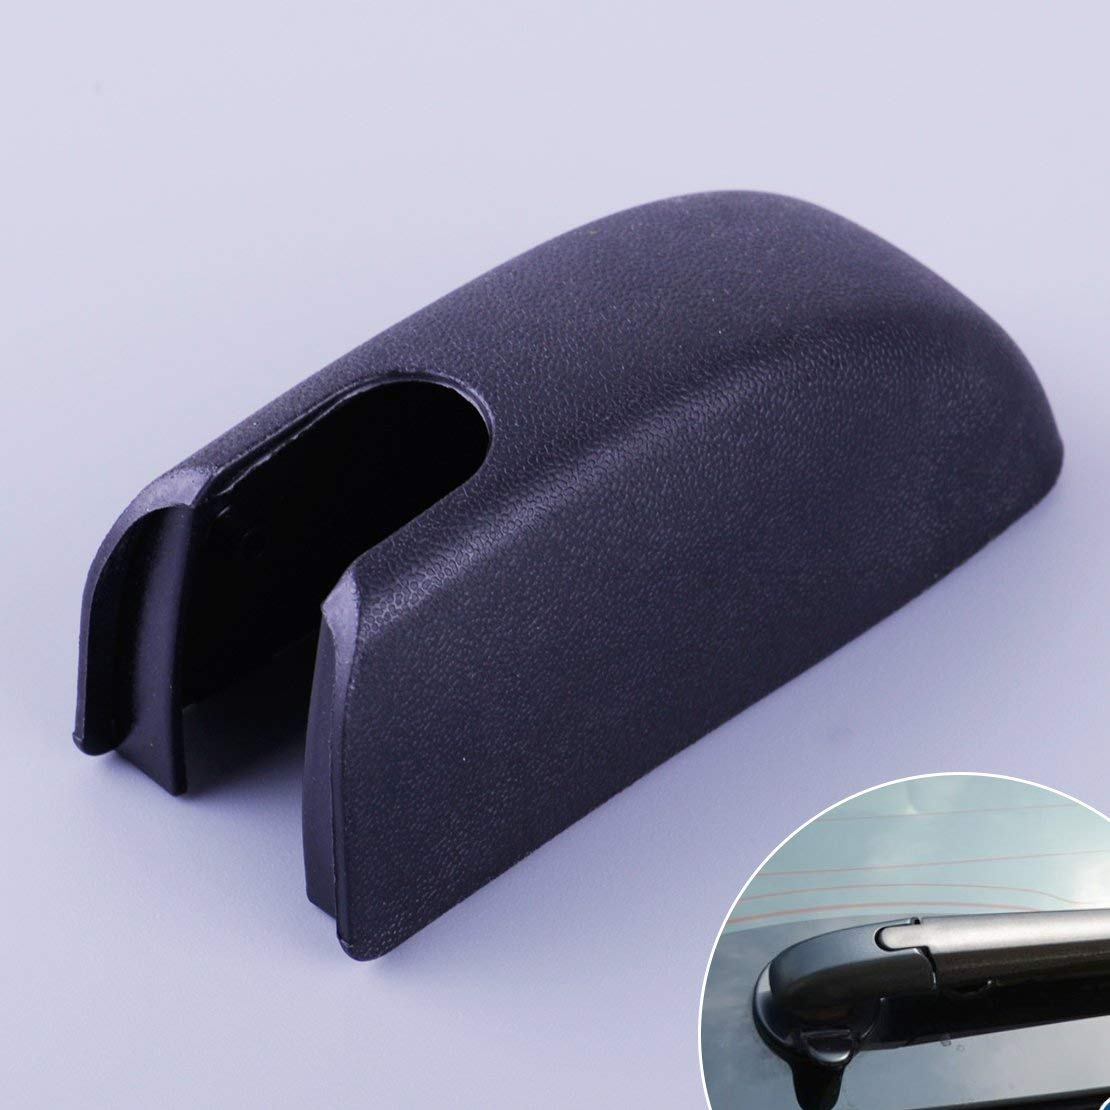 Cheap Juddering Windscreen Wipers Find Juddering Windscreen Wipers Deals On Line At Alibaba Com